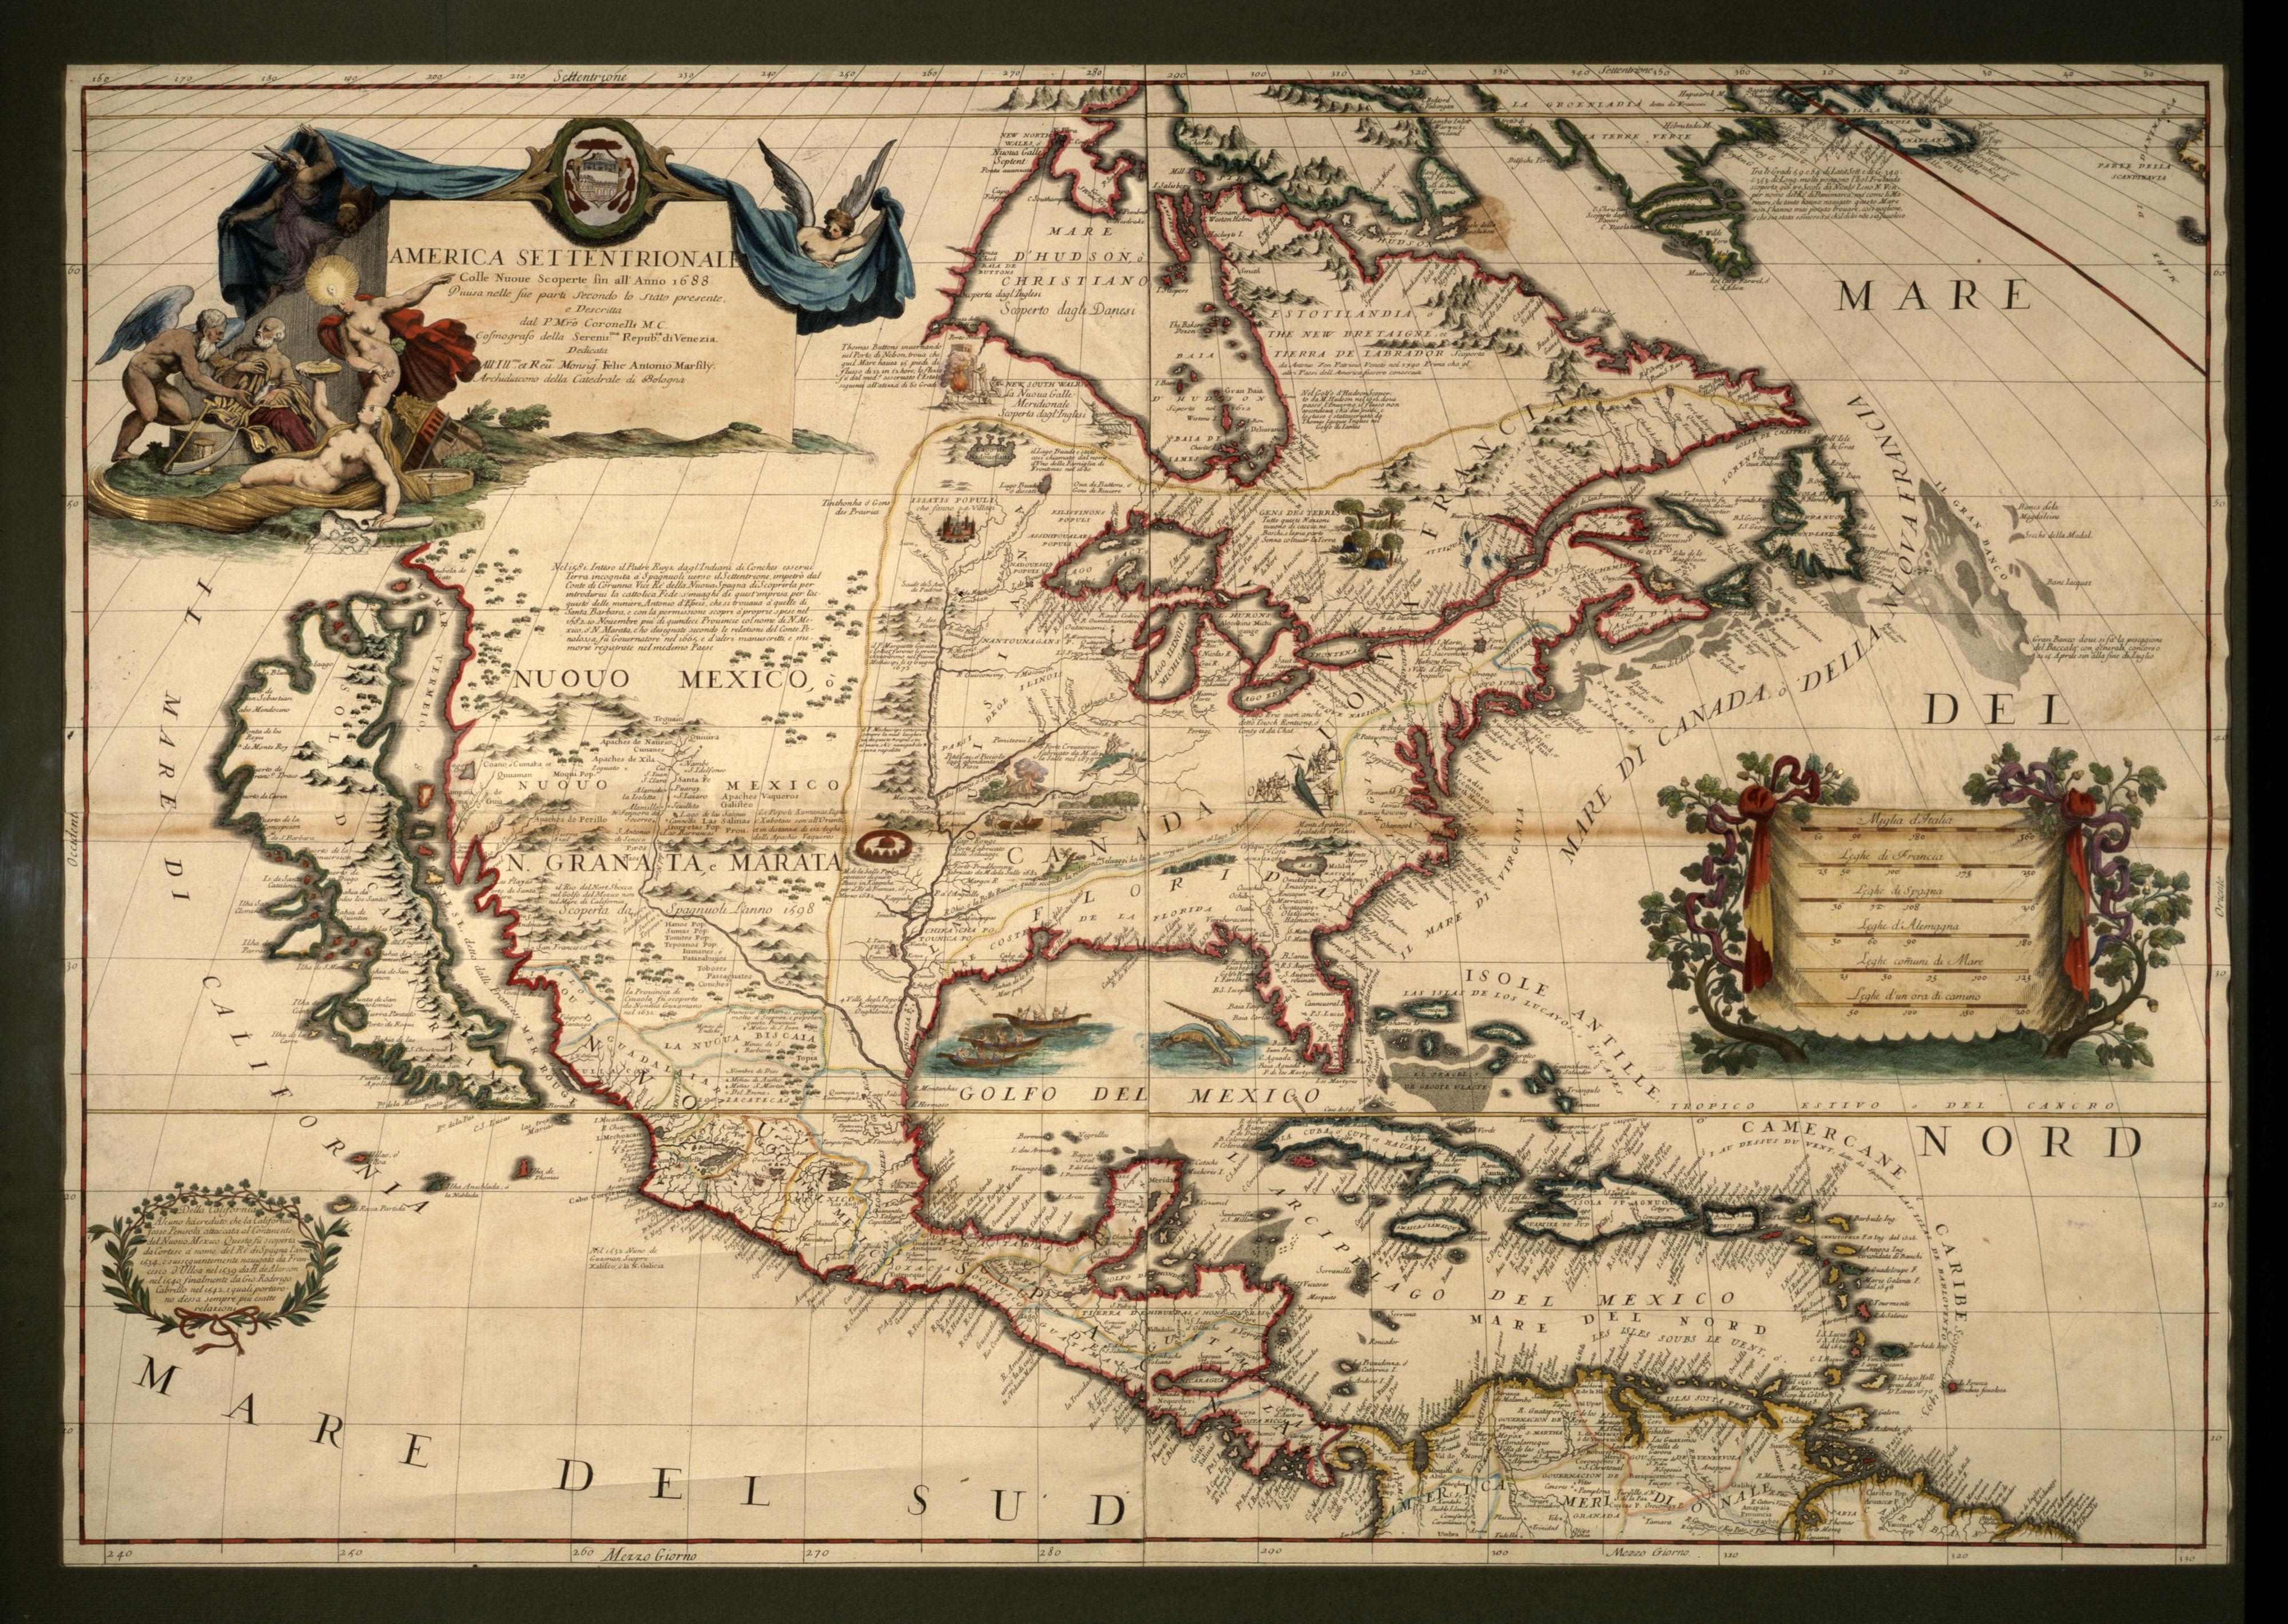 America Setentrionale – Map Of The North America | Picture This - Early California Maps